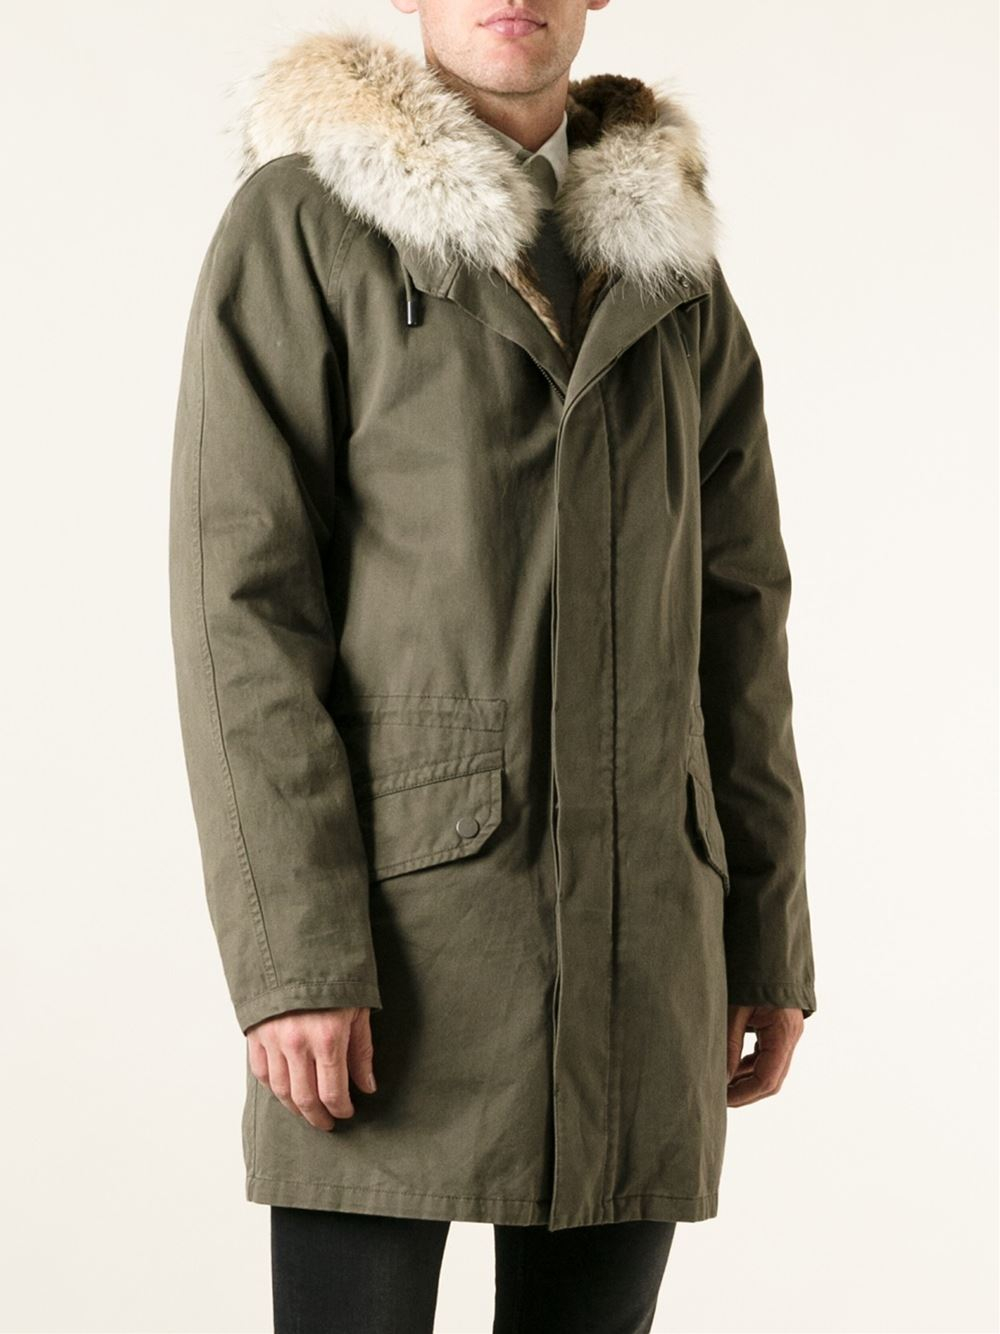 756d46a1a013 Yves Salomon Lining and Trimmed Hood Parka in Green for Men - Lyst